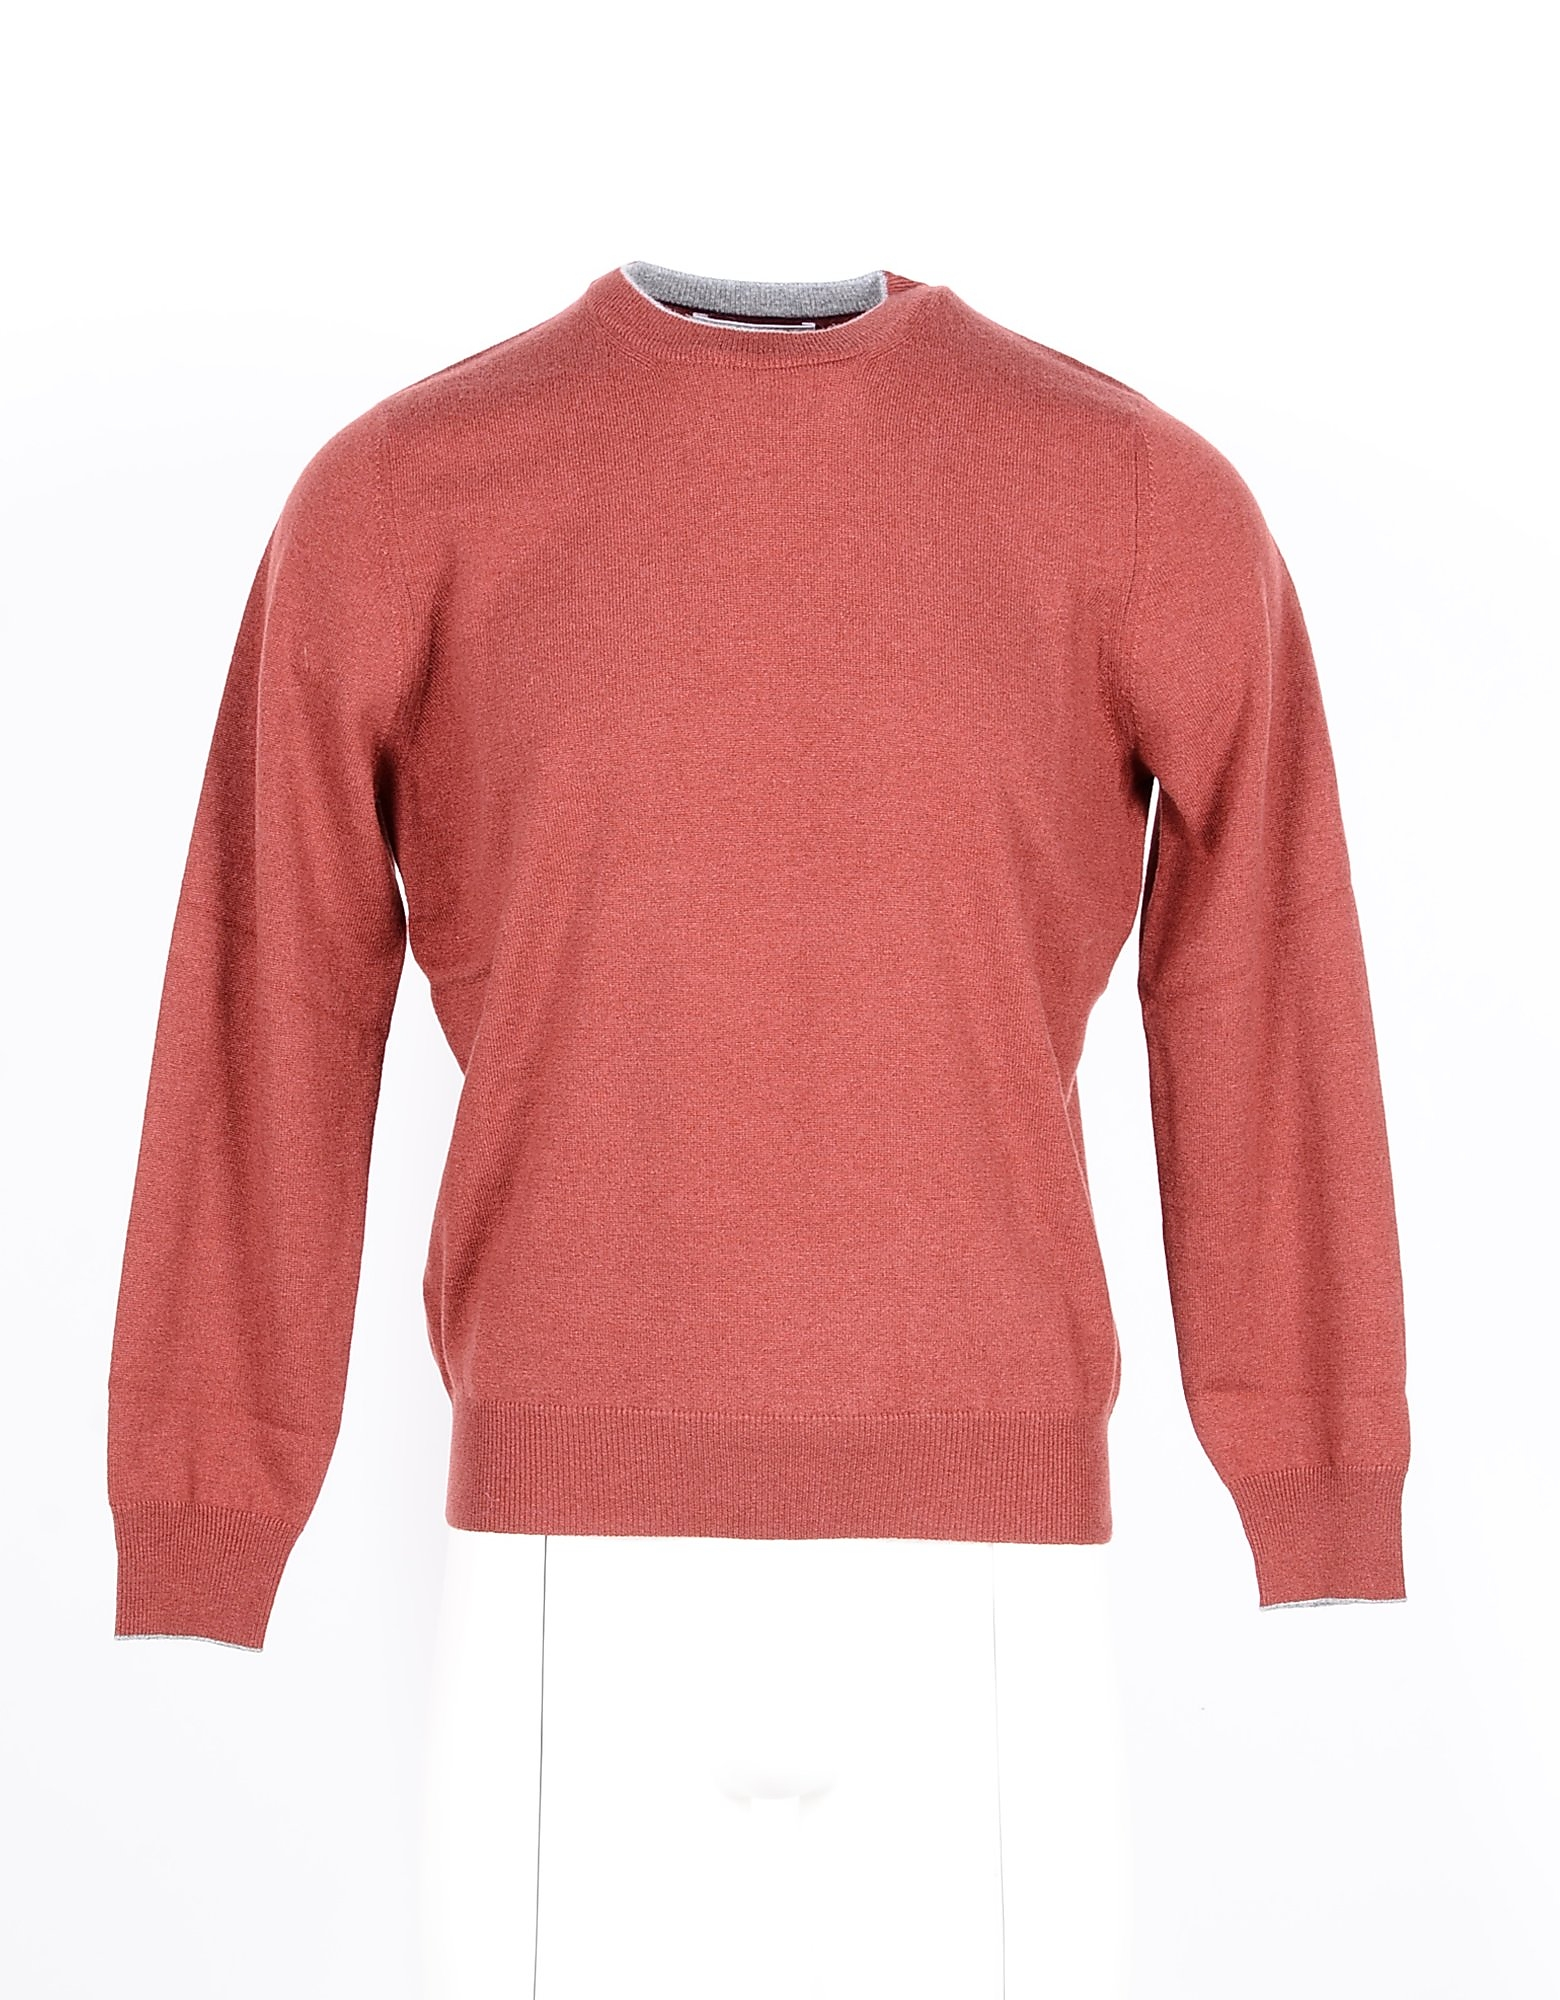 Brunello Cucinelli Designer Knitwear, Bordeaux Pure Cashmere Men's Sweater